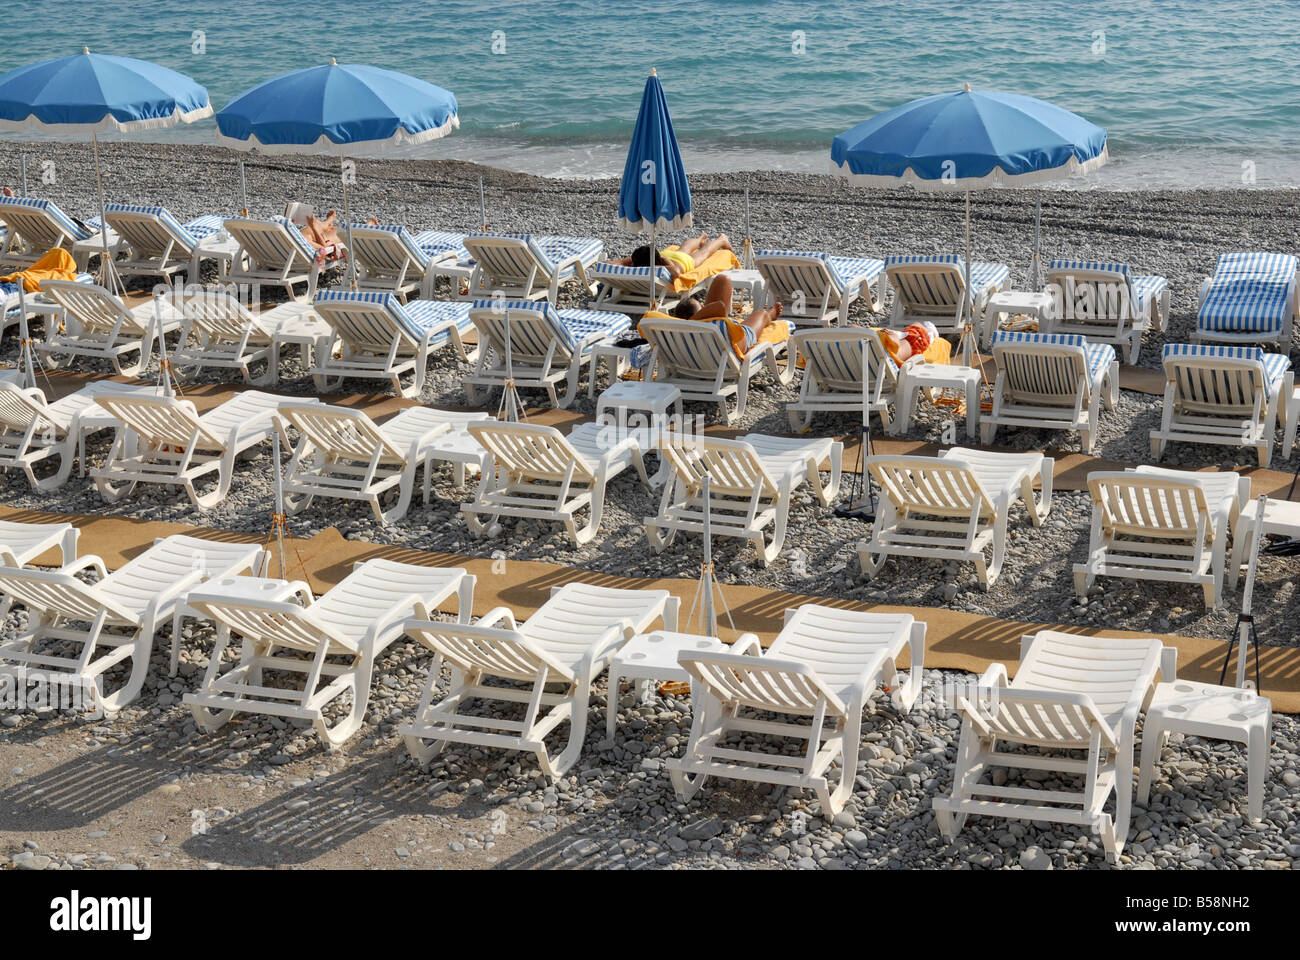 Sun loungers on the beach at Nice in France - Stock Image